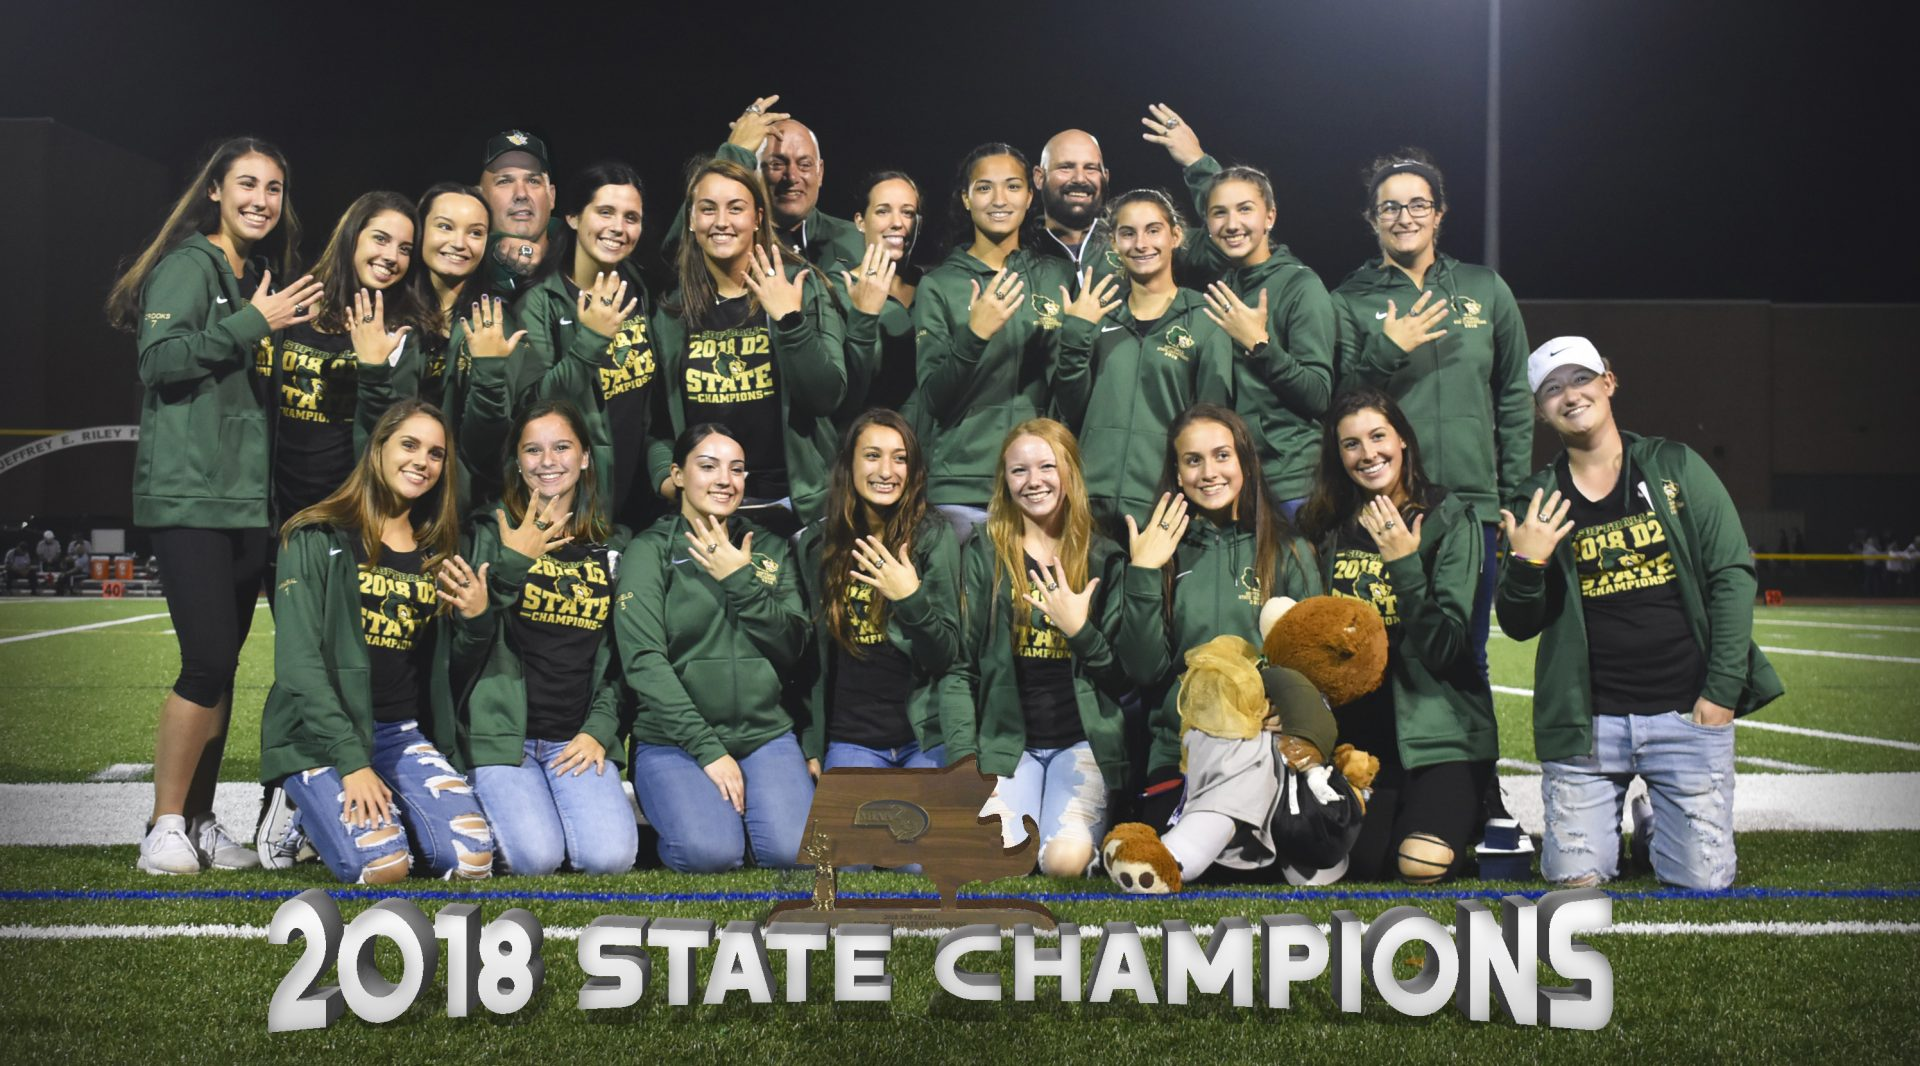 2018 Softball Ring Ceremony State Champions